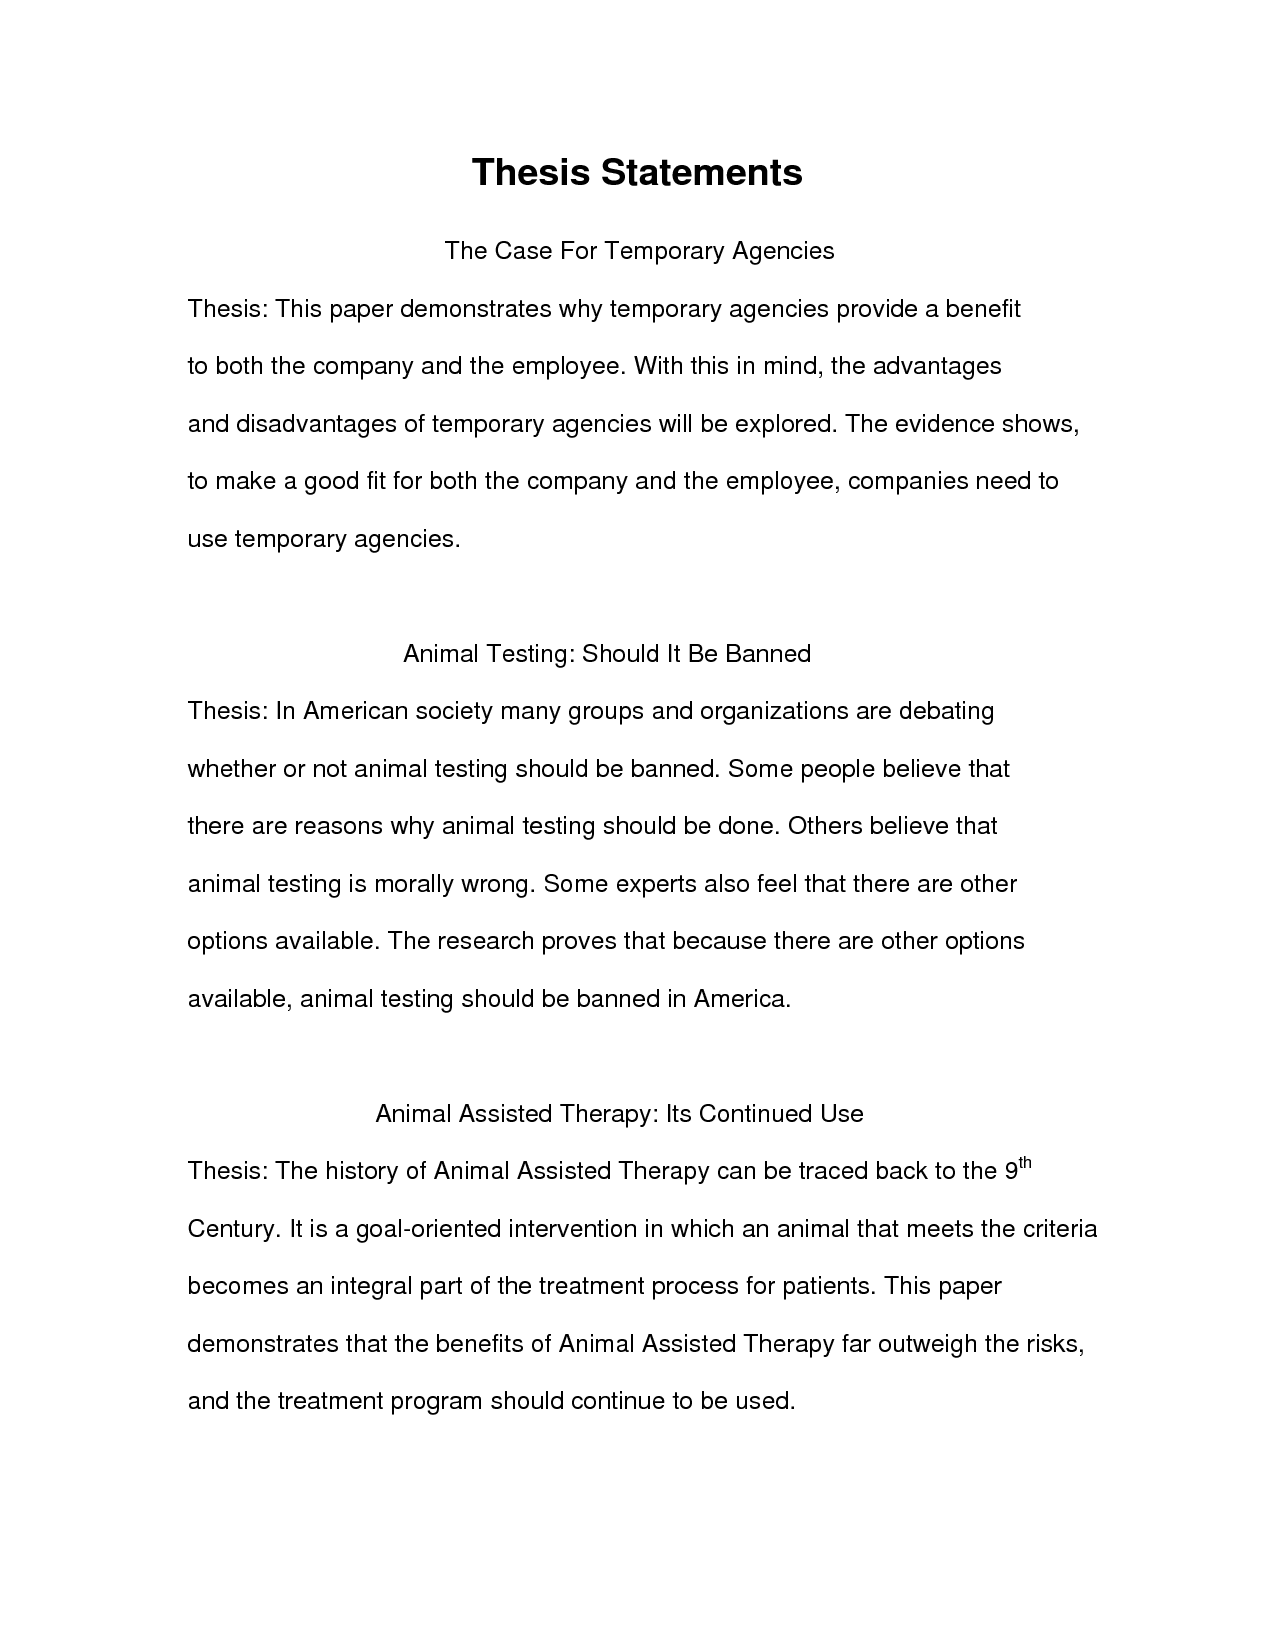 027 Thesis Statement For Research Paper On Abortion Breast Cancer Essay Template Bfnmxz7cfvs Of In An Excellent Example Blood Papers Sponsor Form Full